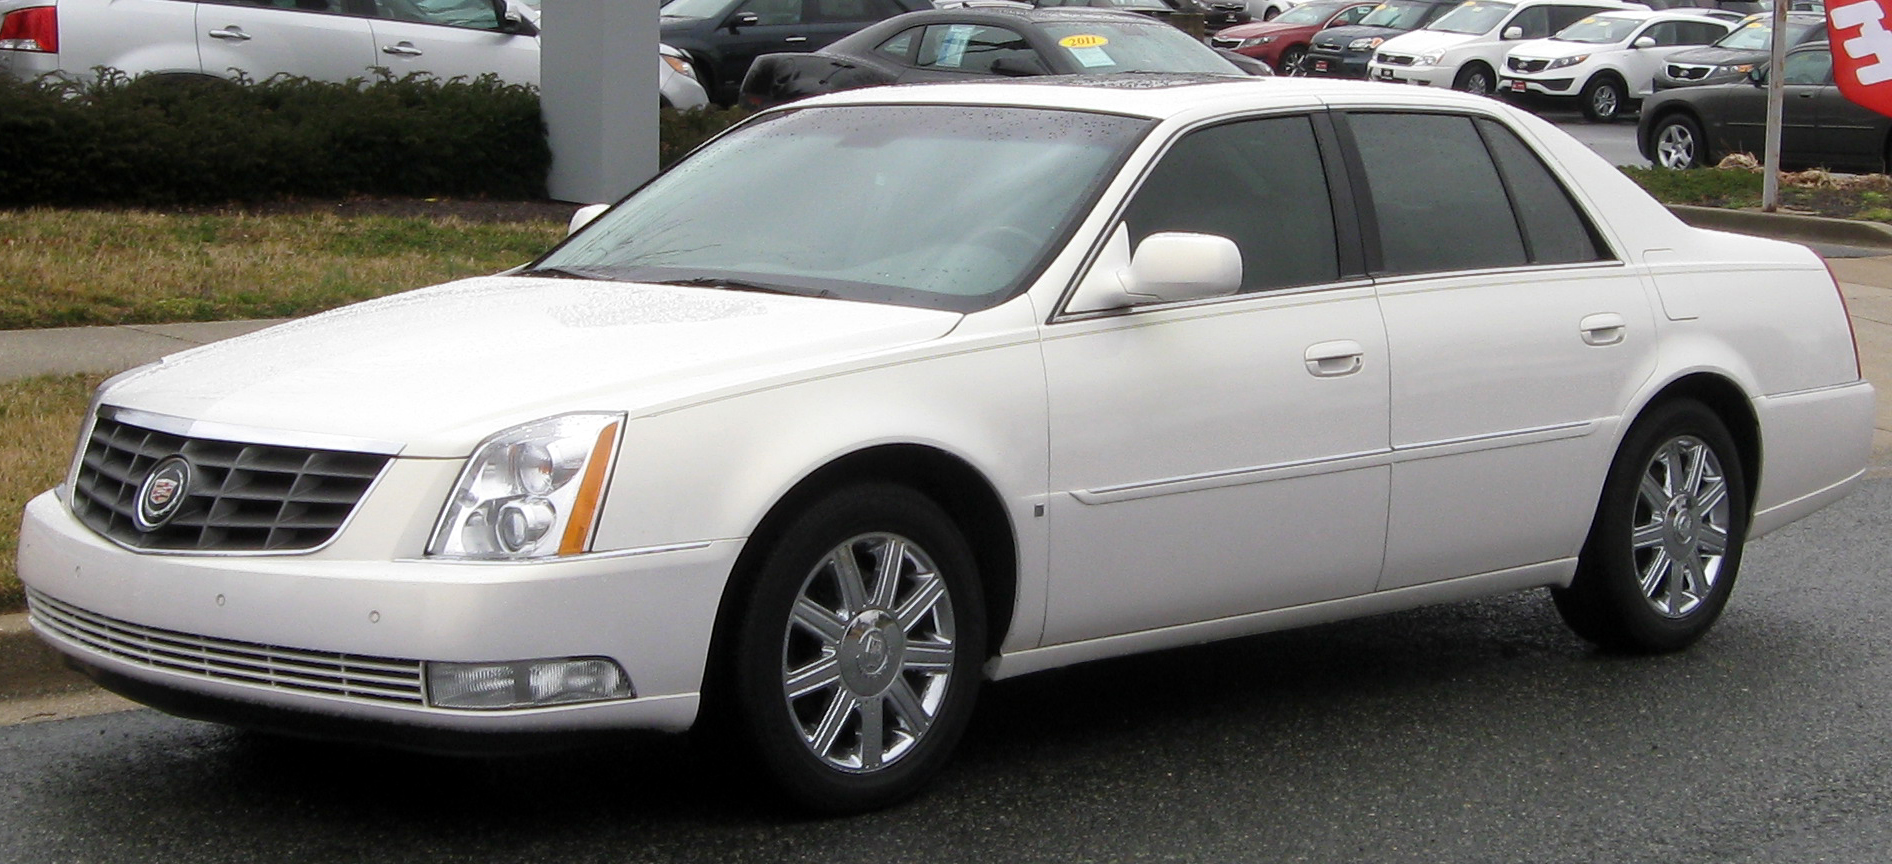 cadillac dts pictures #5